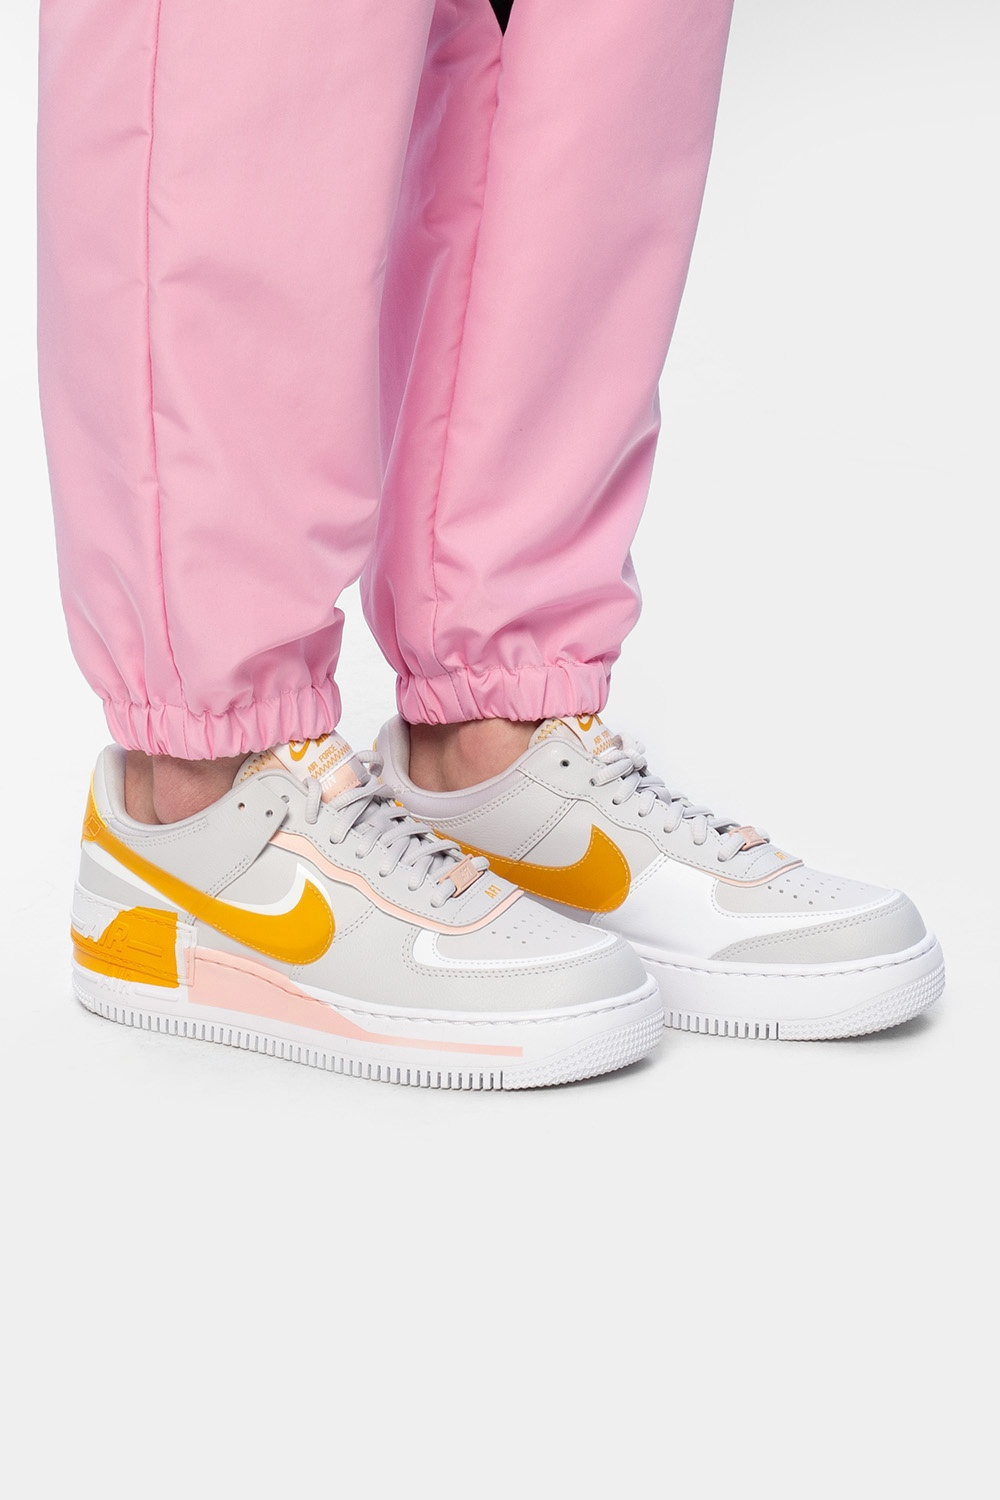 Air Force 1 Shadow Se Sneakers Nike Vitkac Singapore The women's shadow is bold reworking of nike's iconic air force 1, named after the doubling up of panels and most famous features. air force 1 shadow se sneakers nike